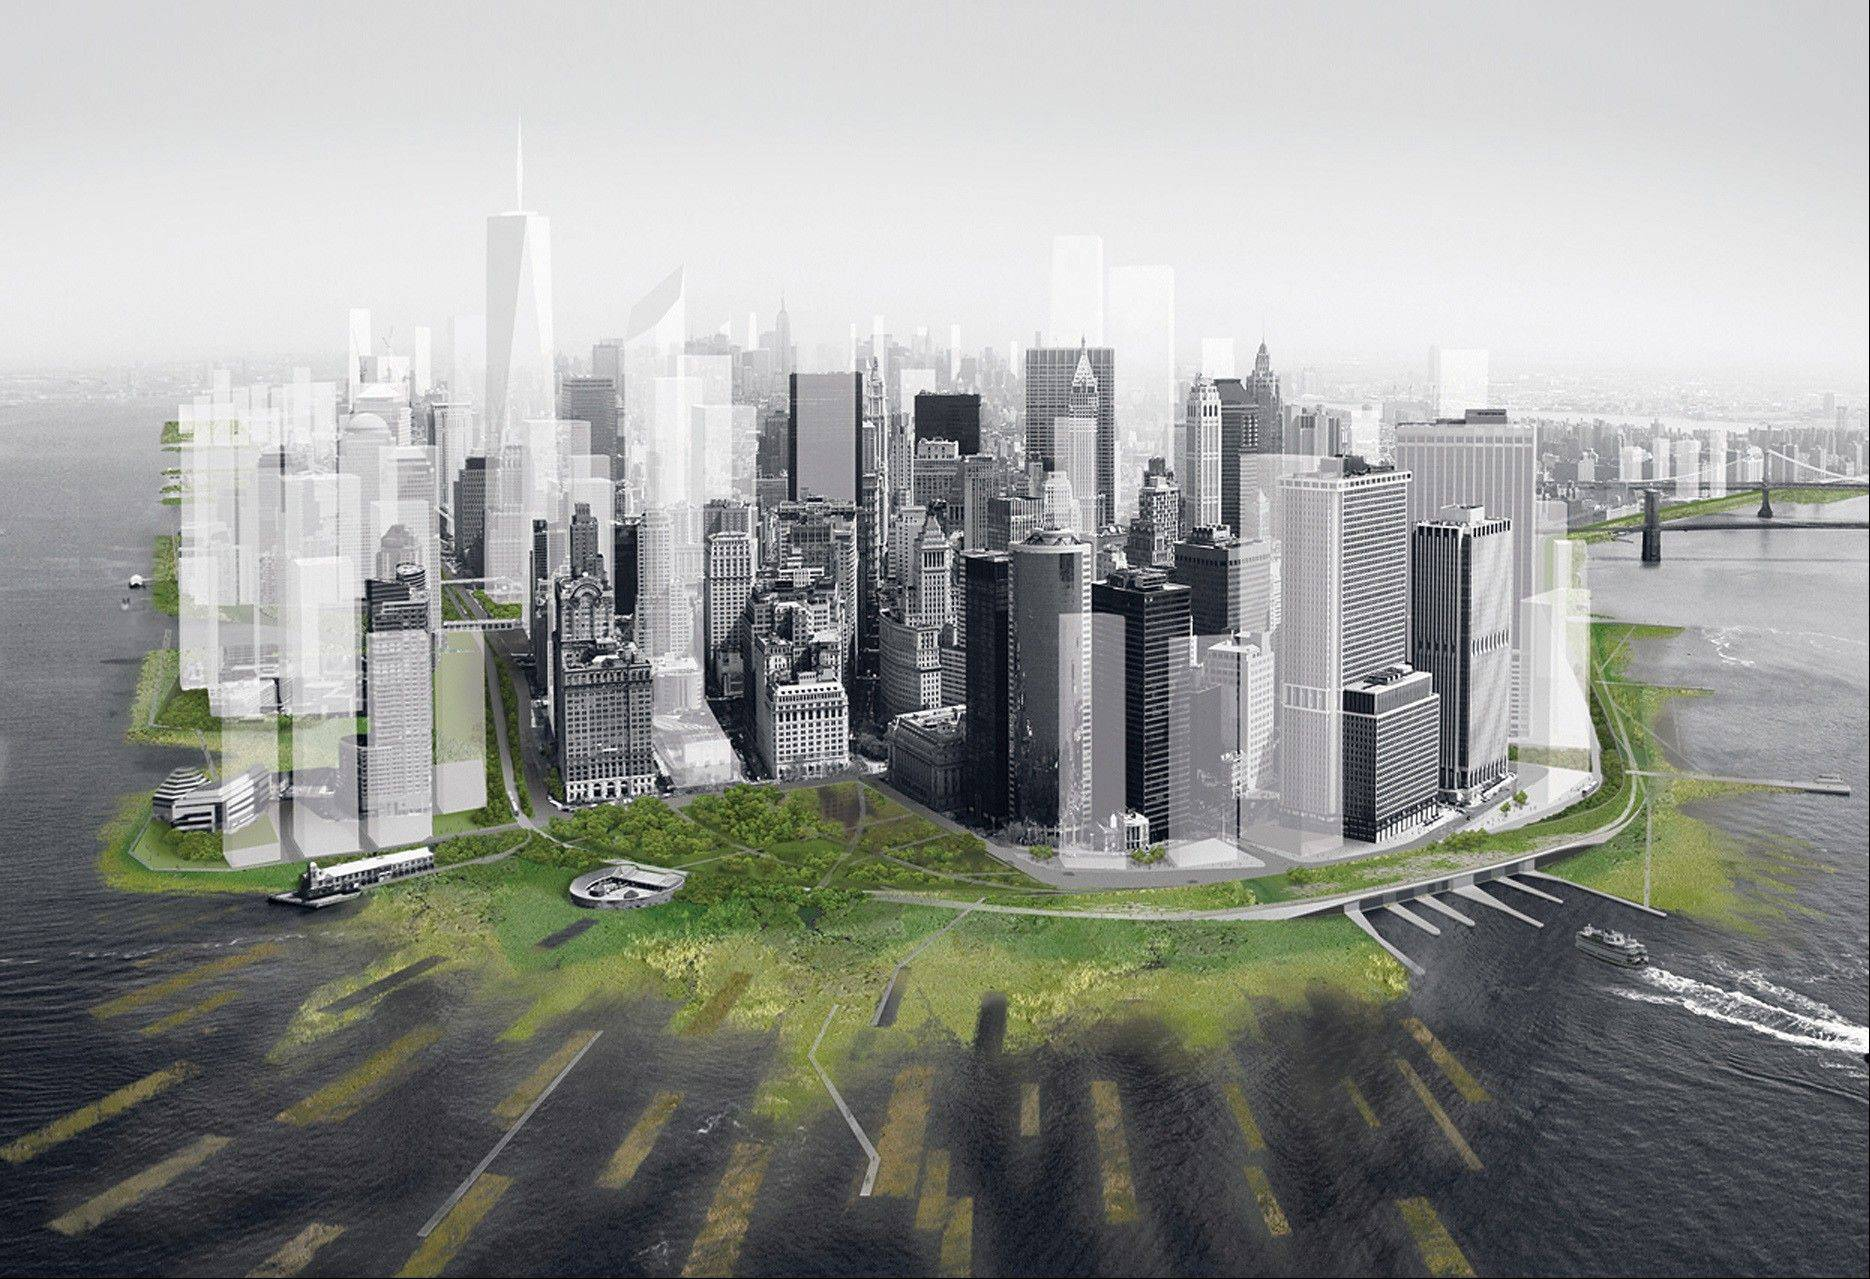 This artist's rendering shows a proposed perimeter wetlands and an archipelago of man-made barrier islets on New York's Manhattan island, designed to absorb the brunt of a huge storm surge. The concept was worked up by DLANDSTUDIO and Architecture Research Office, two city architectural firms, for a museum project.